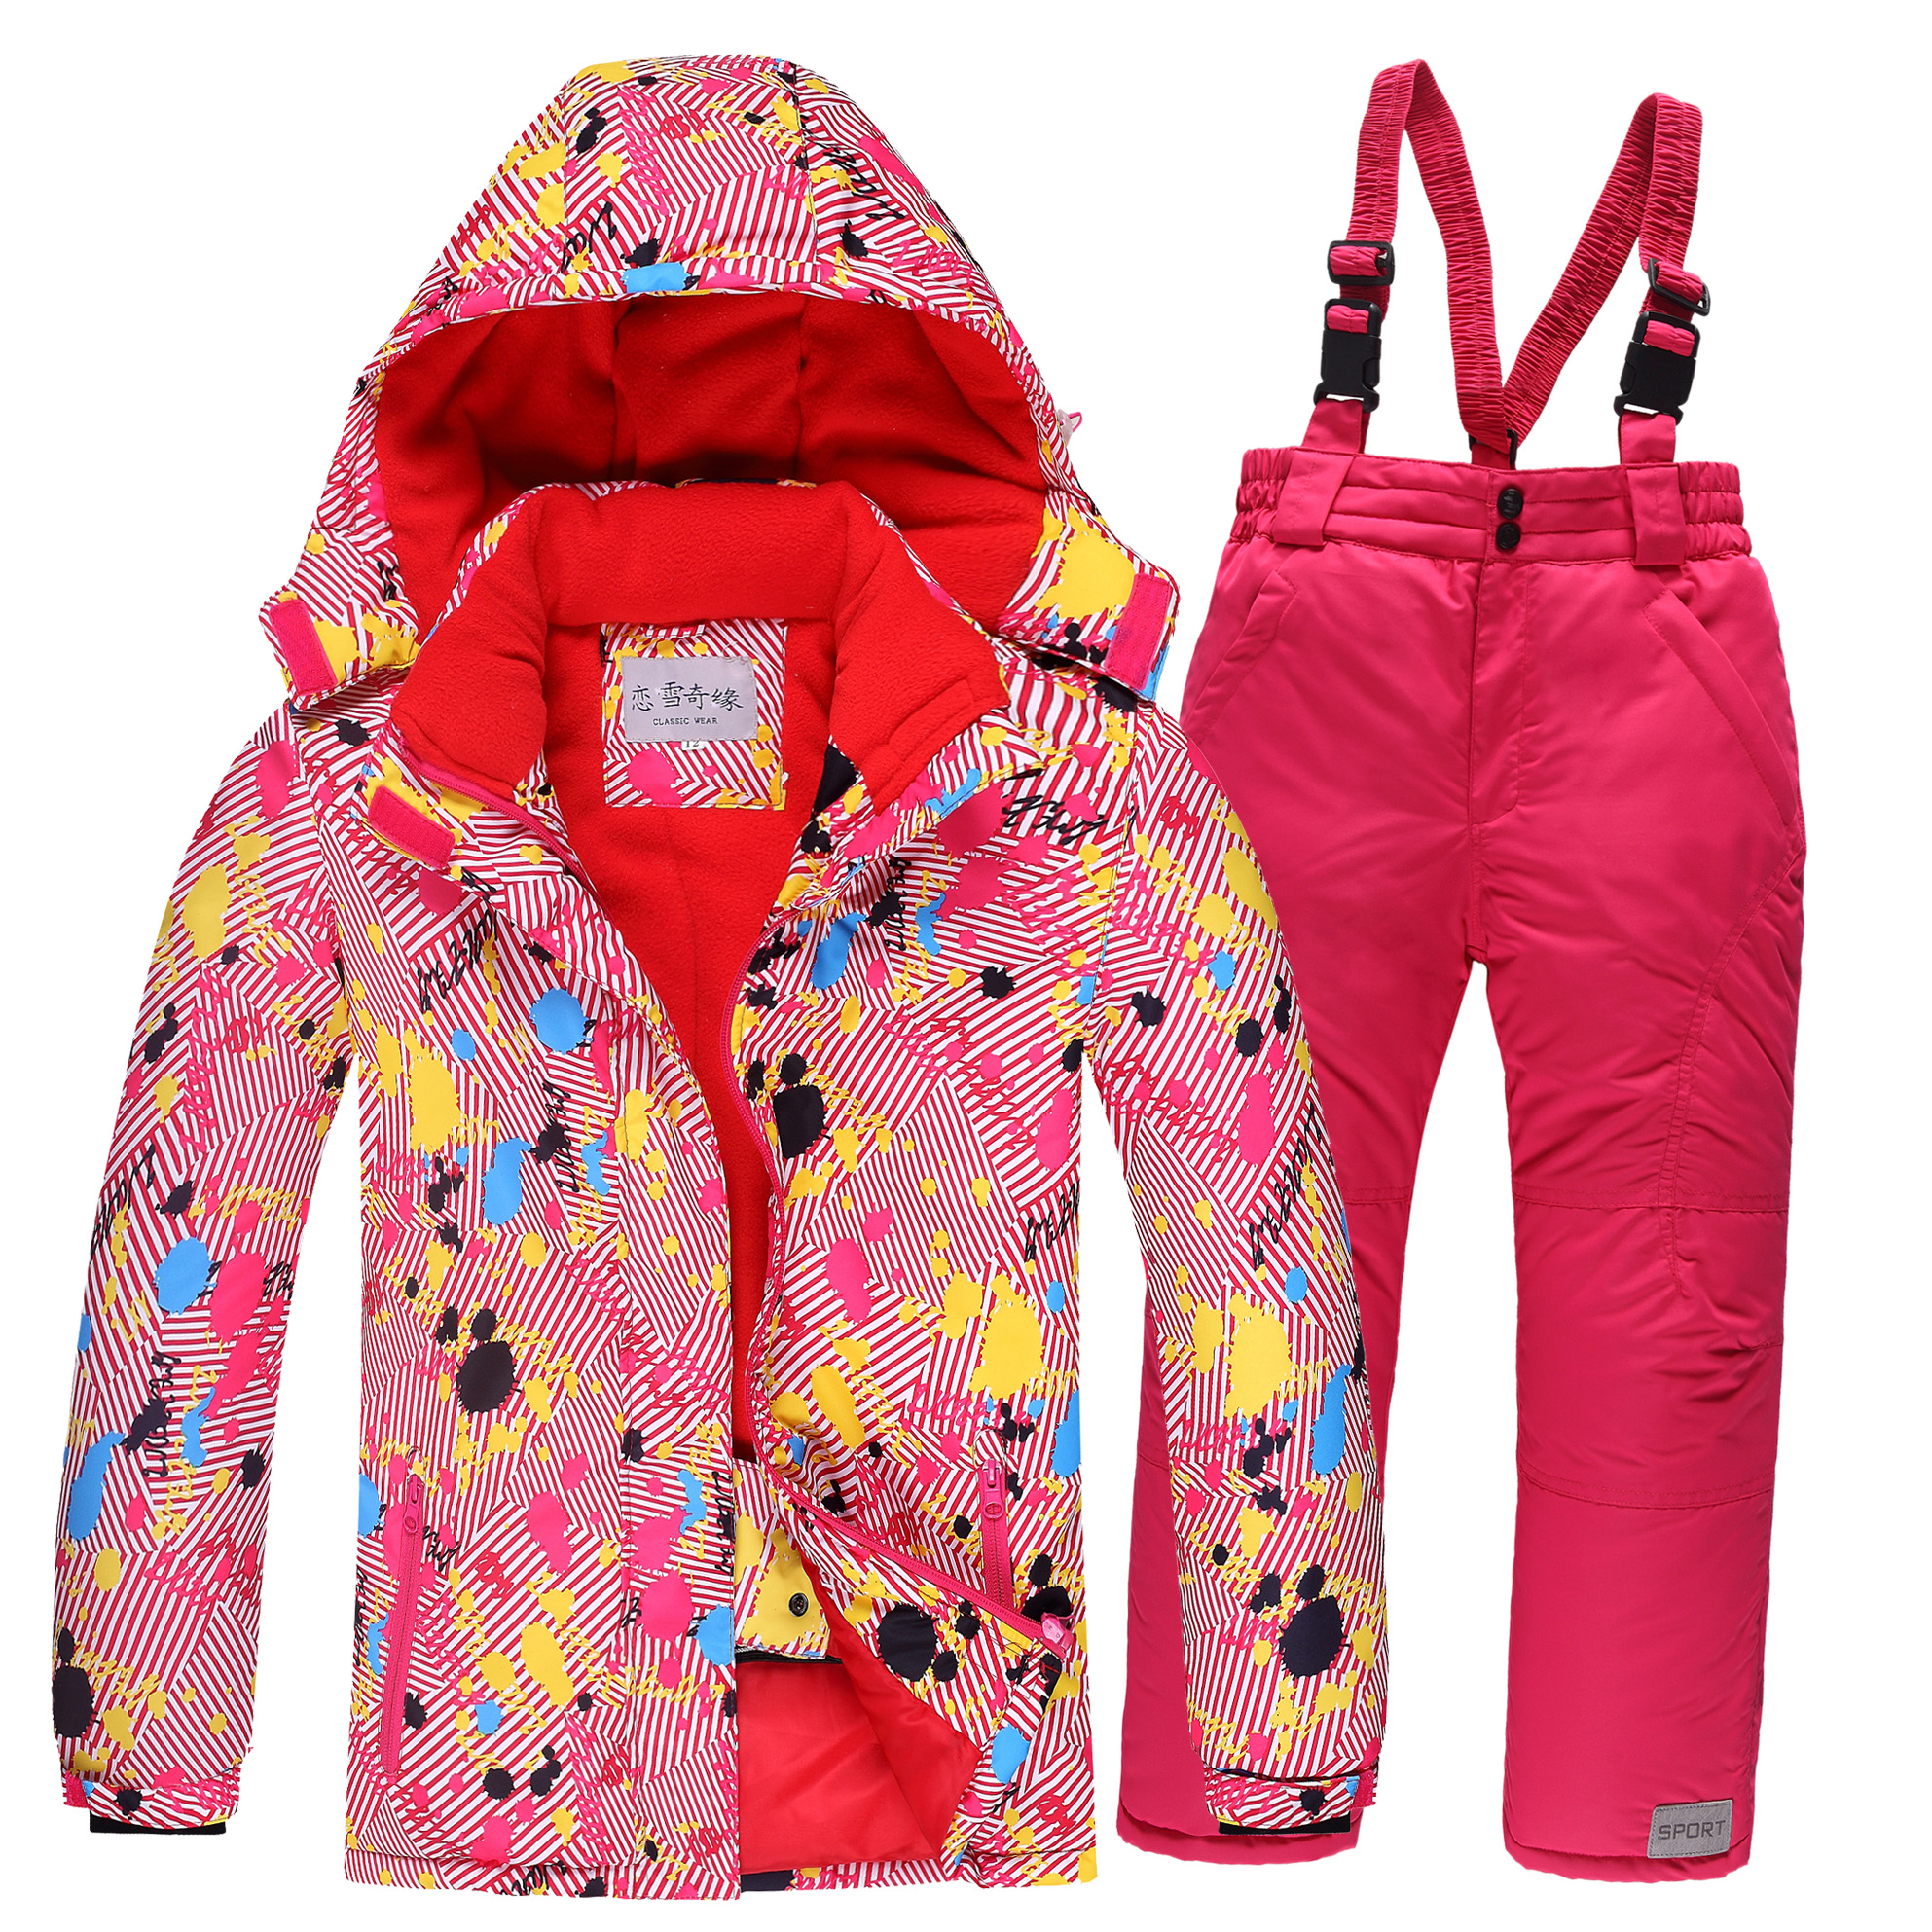 2019 Winter Snow Jacket Ski Suit Women Snow Jacket And Pants Windproof Waterproof Graffiti Clothes Snowboard Games Shoes